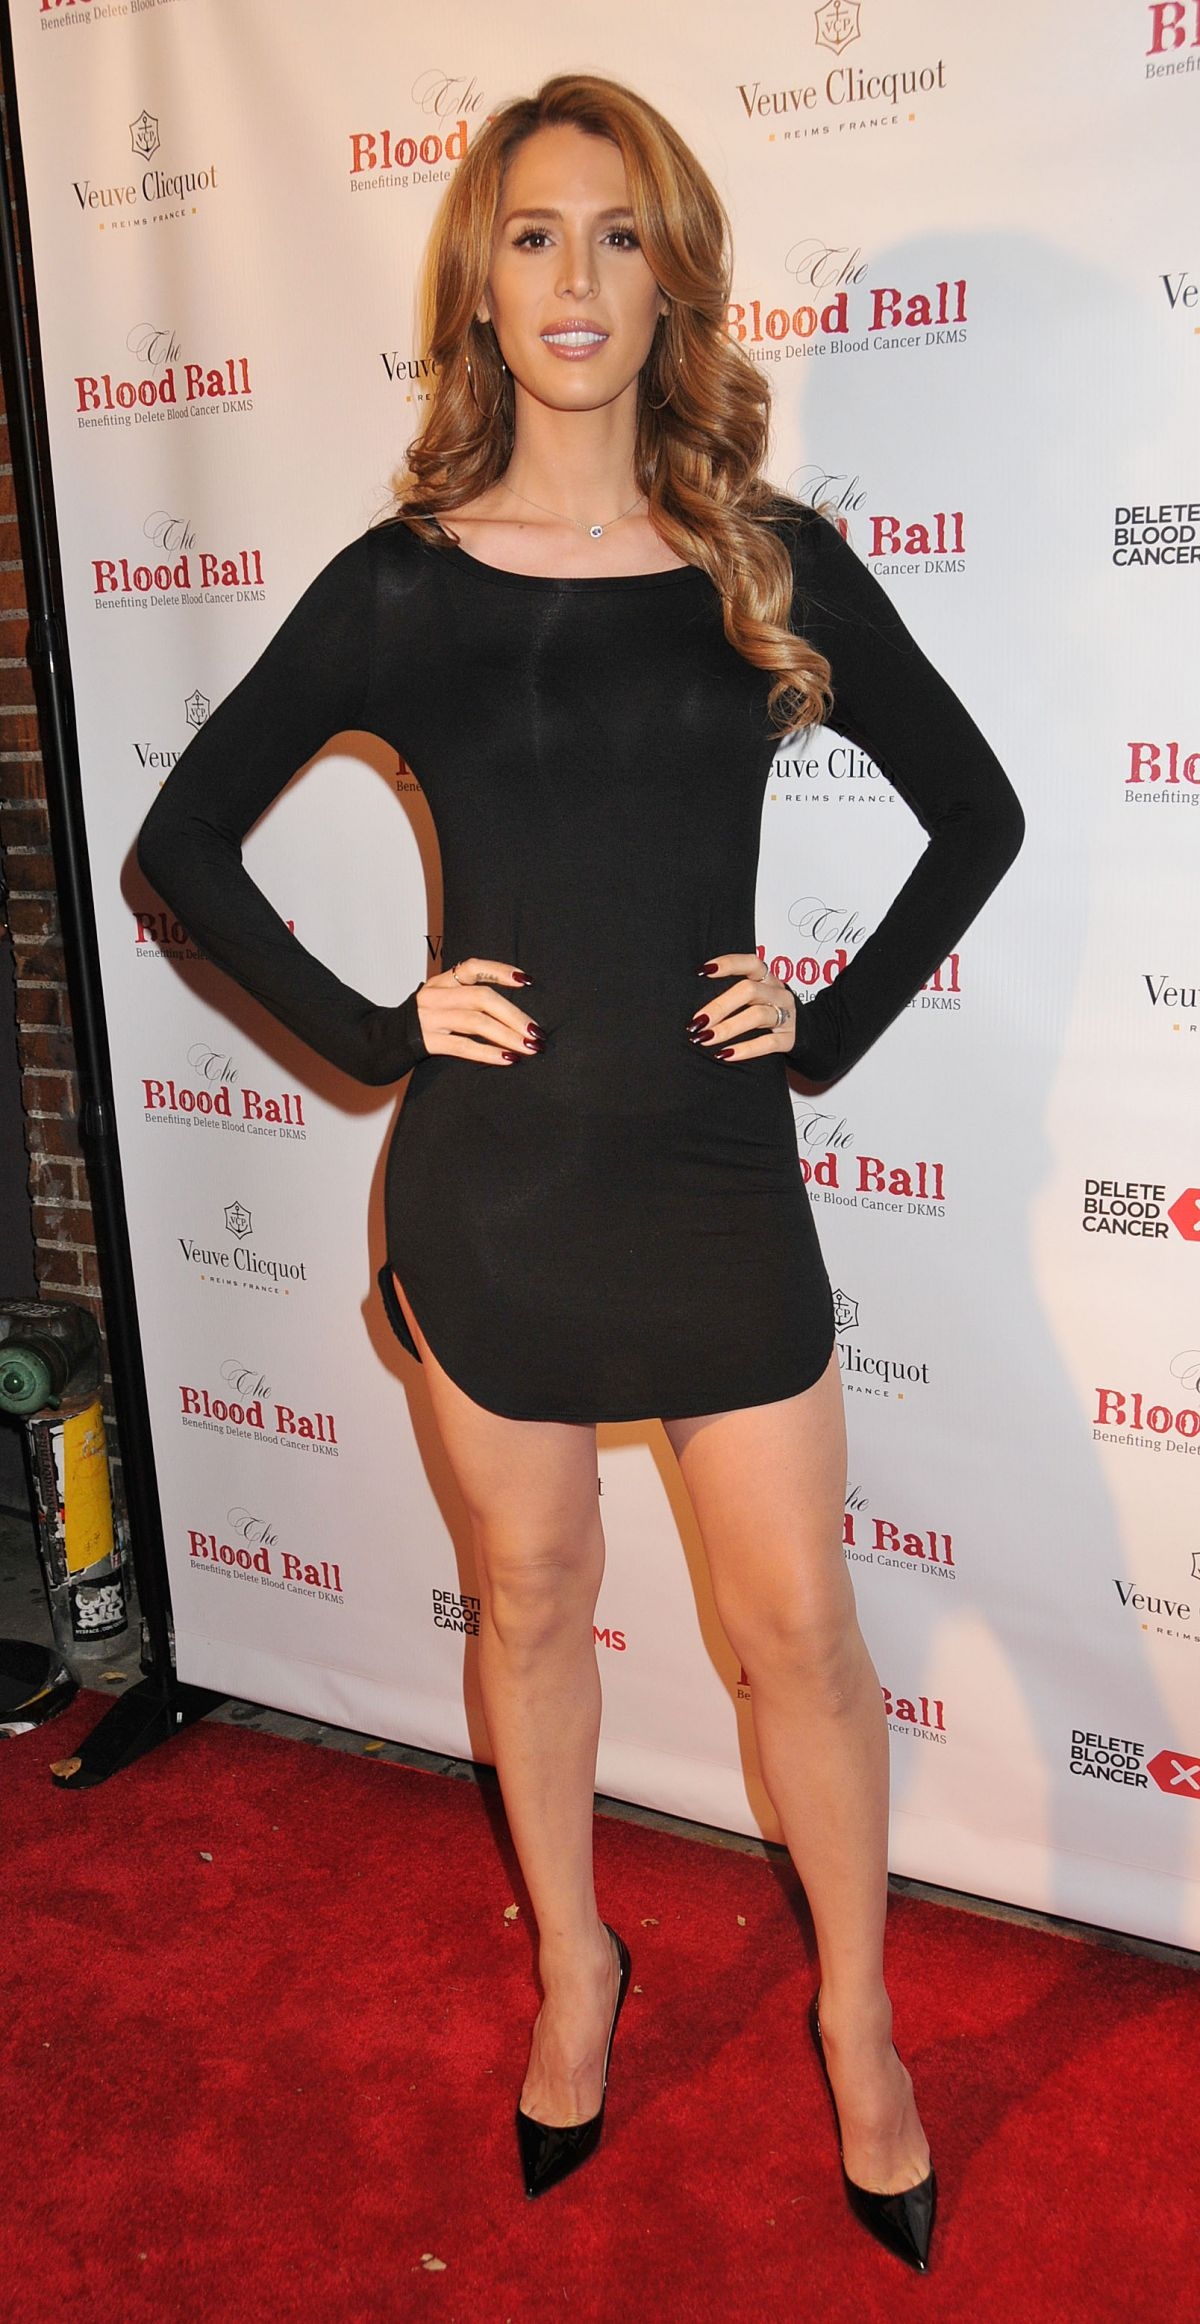 CARMEN CARRERA at The Blood Ball in New York 10/29/2015